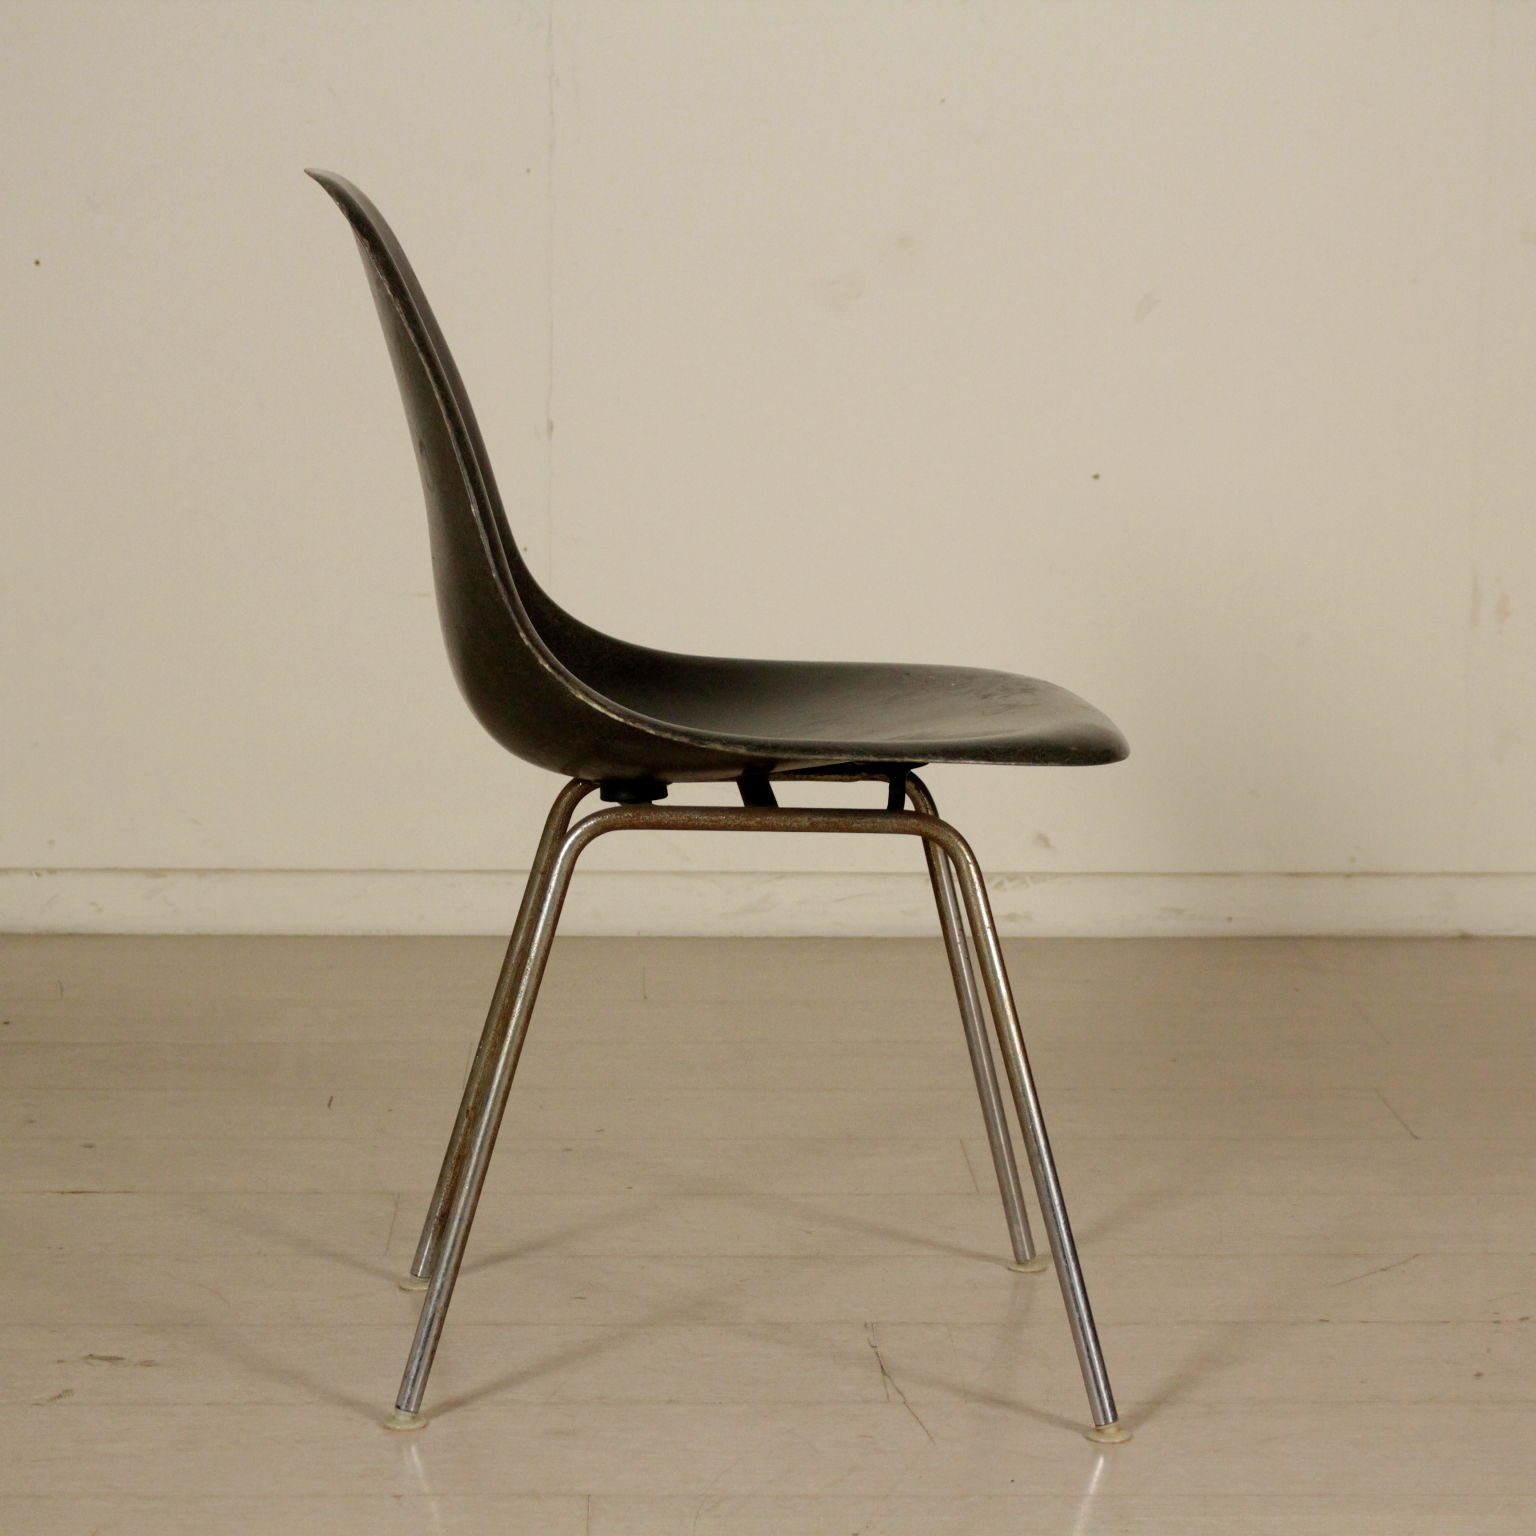 Chair by Charles Eames for Herman Miller Vintage USA 1960s ...